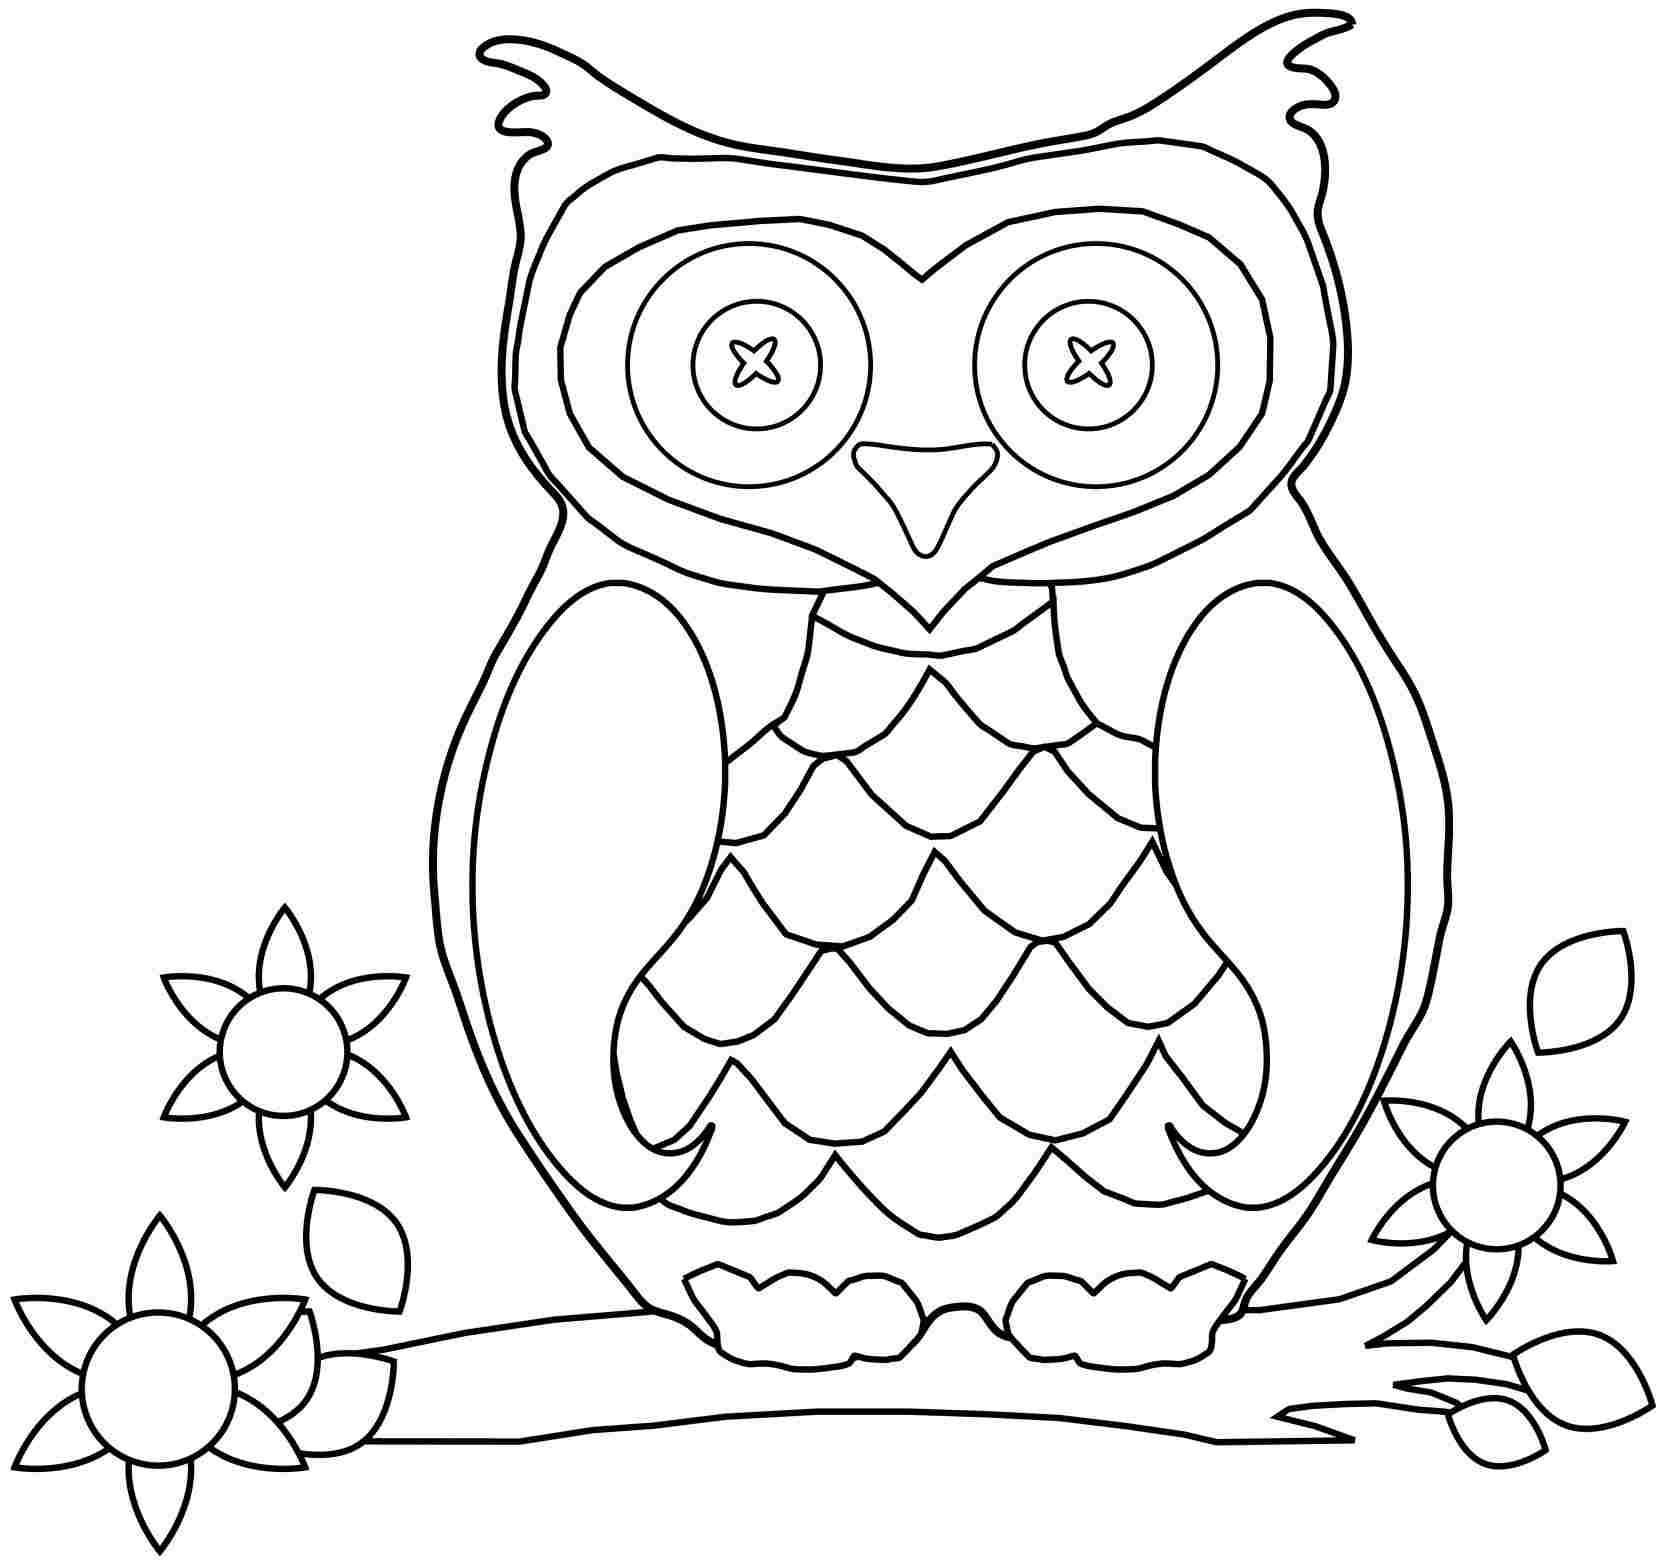 coloring picture of an owl owl coloring pages at getdrawings free download of an owl picture coloring